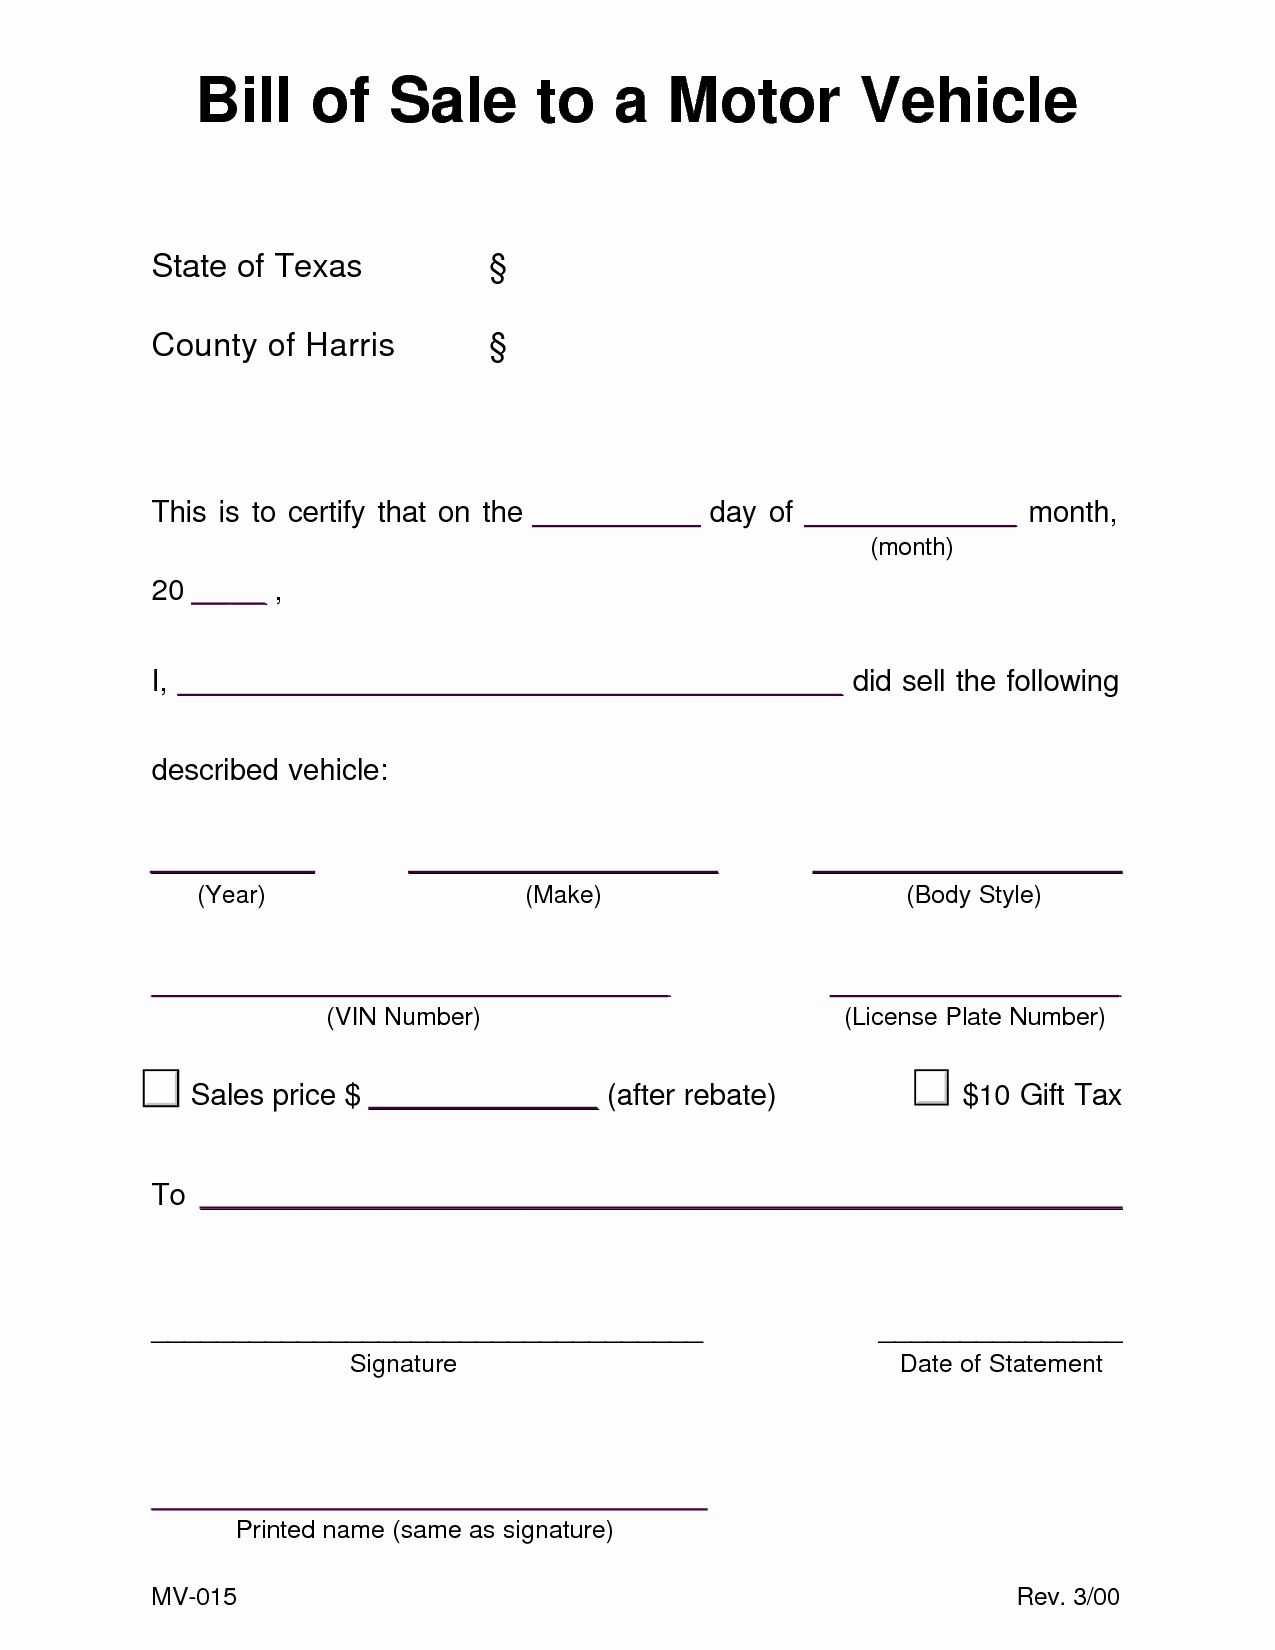 010 Car For Sale Template Free Vehicle Bill Of Printable Nc With Vehicle Bill Of Sale Template Word Bill Of Sale Template Word Template Transfer Letter Format